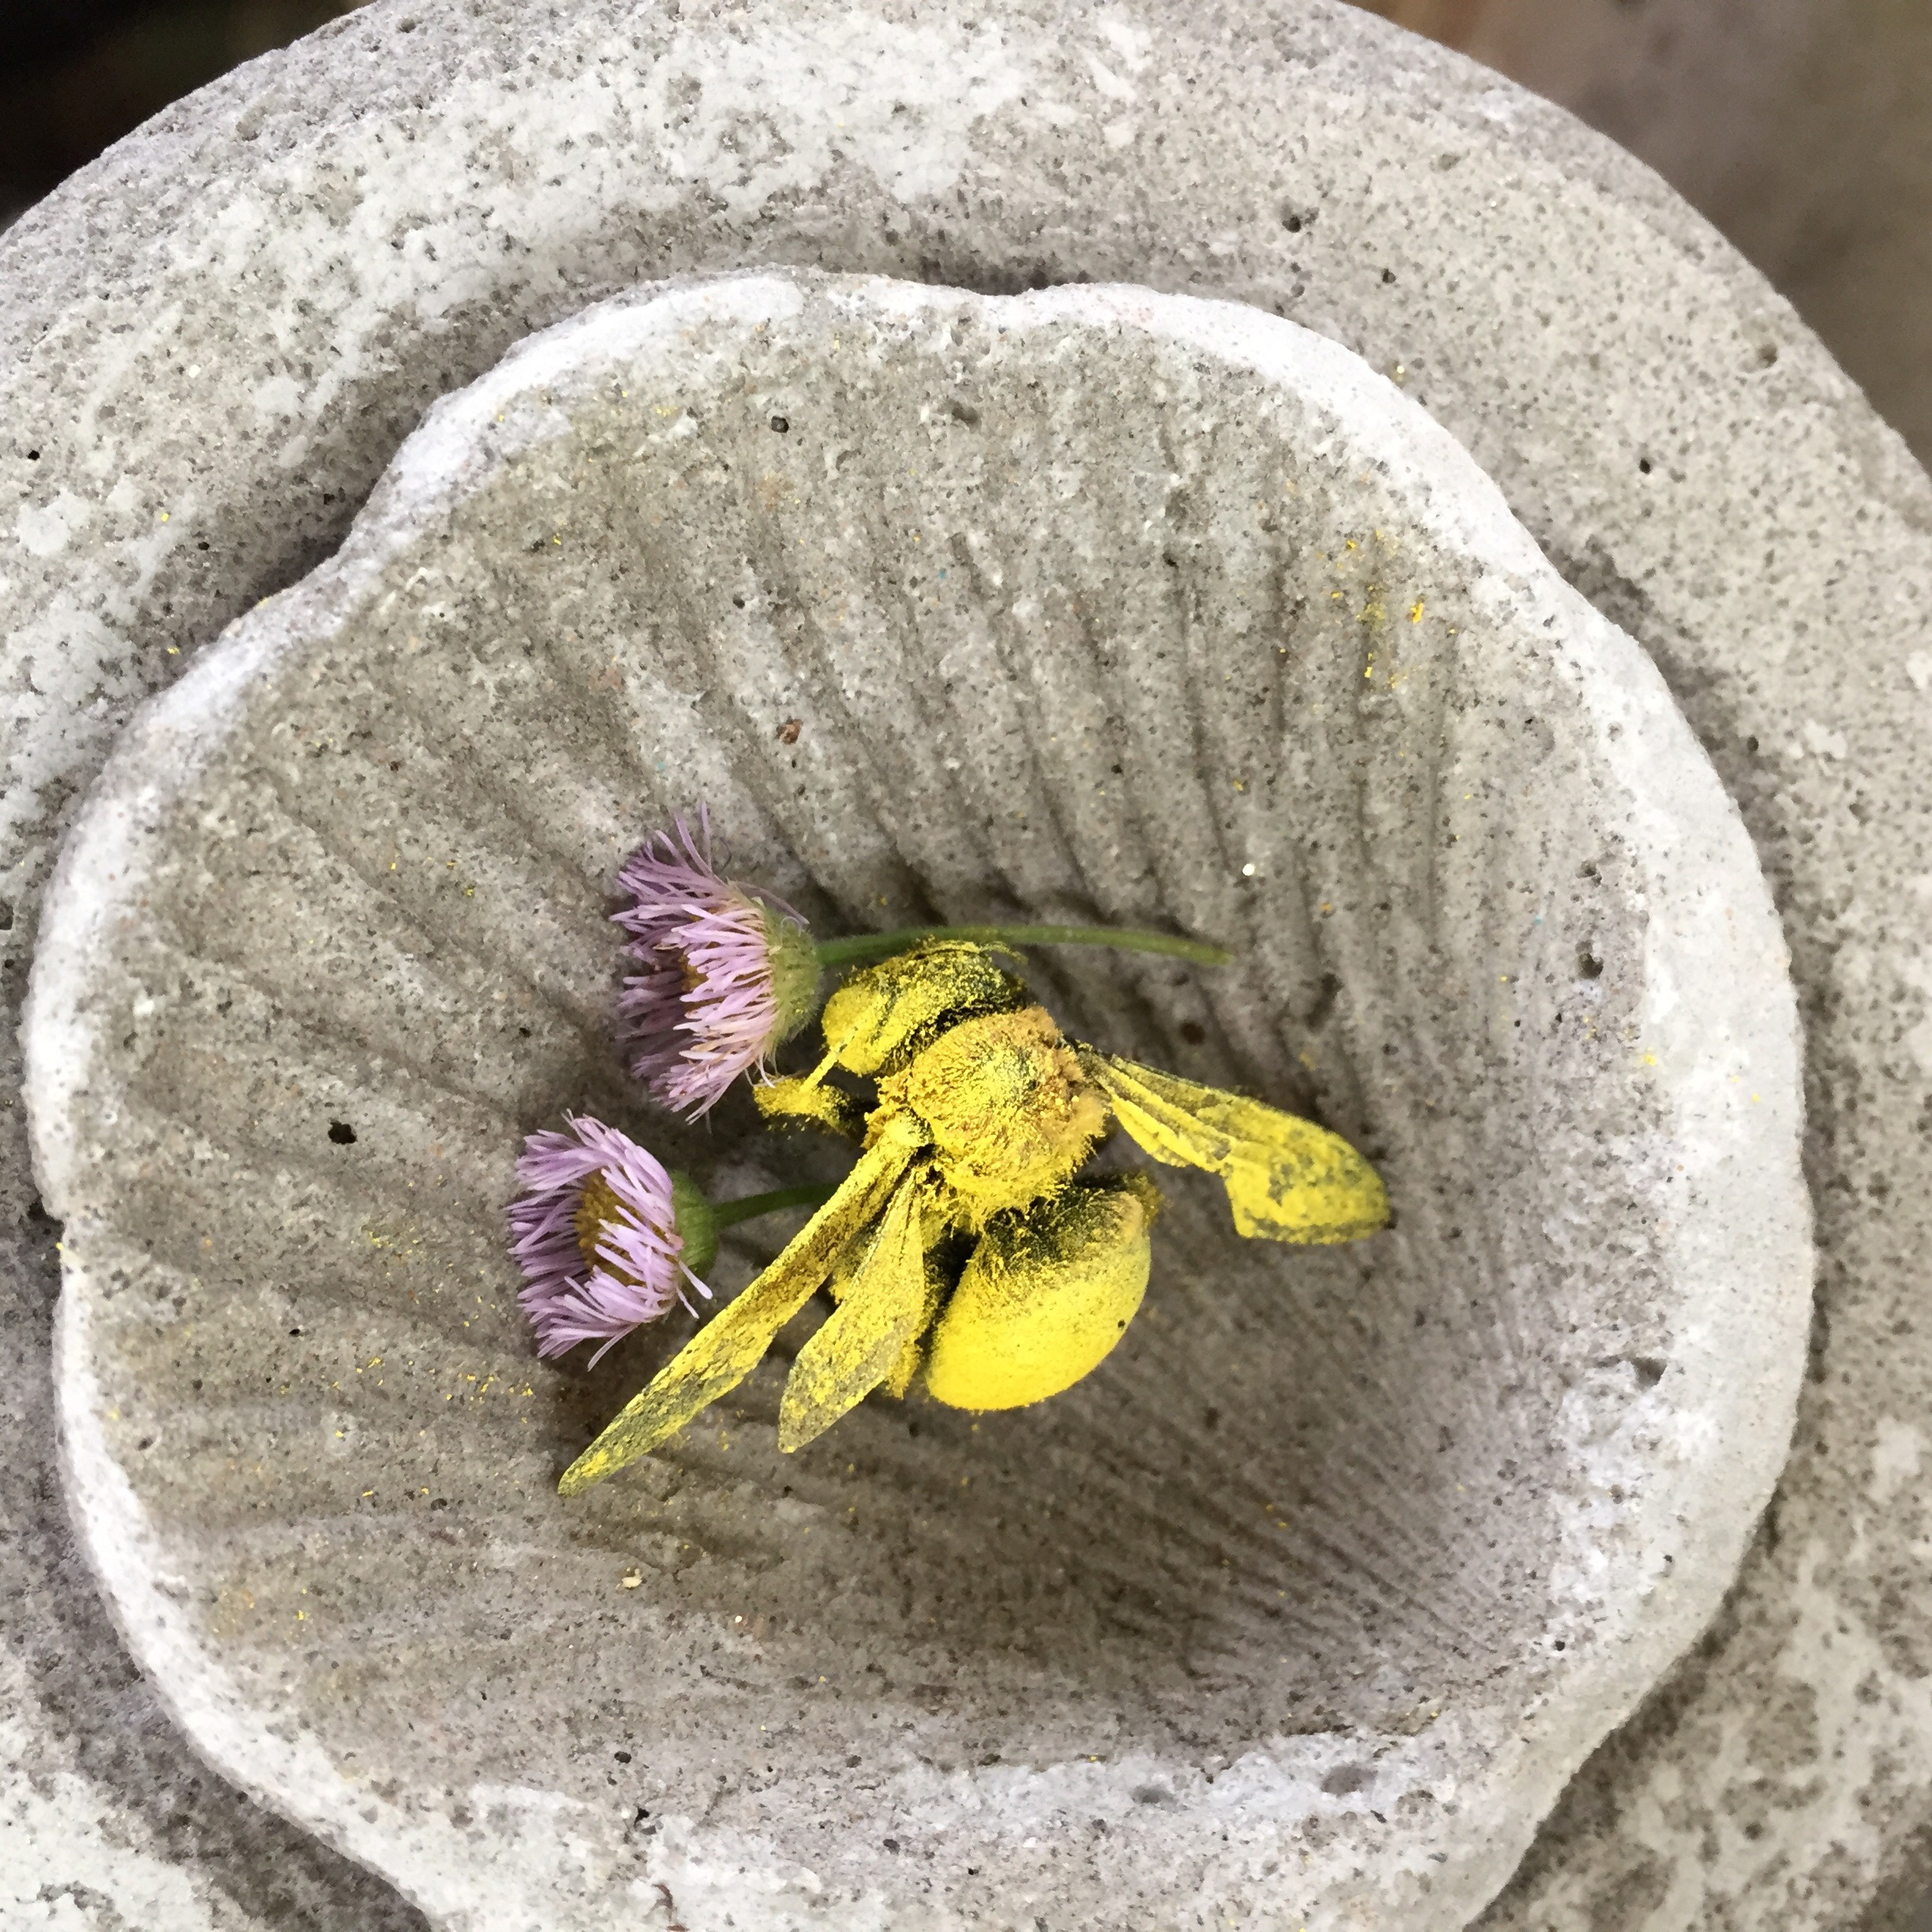 mixed dry media + concrete vessel, paint dusted insect